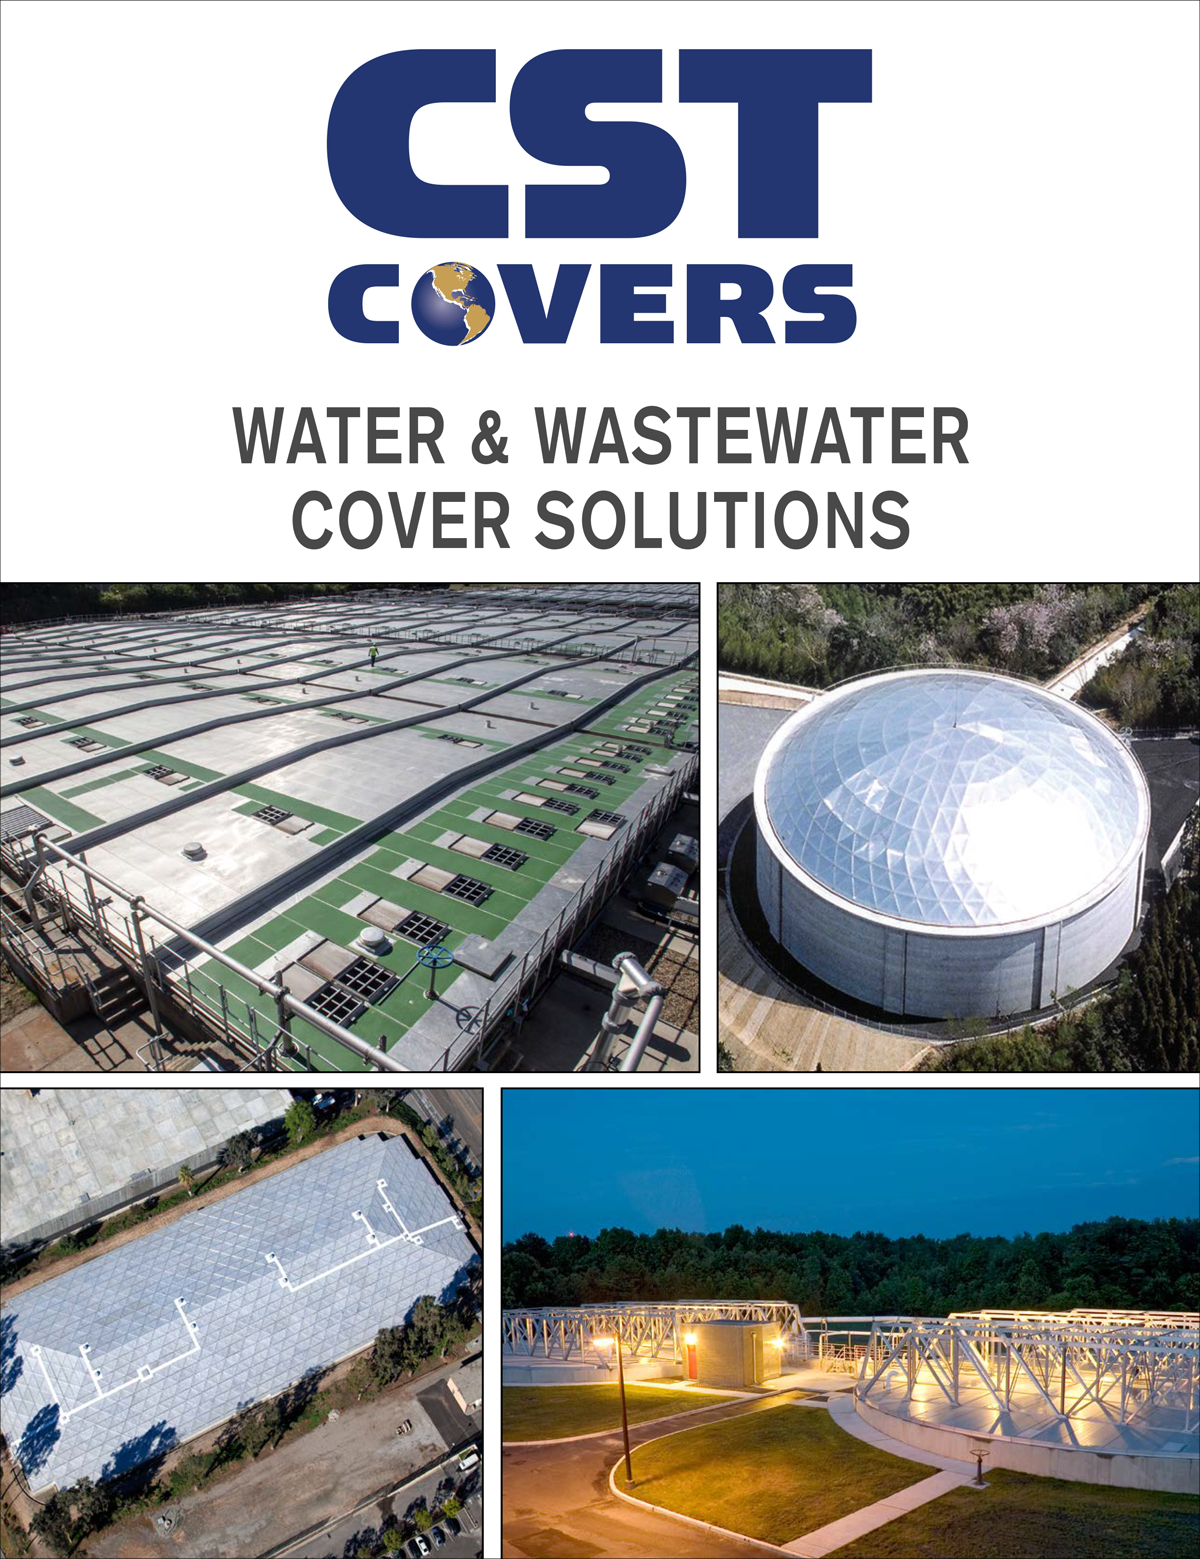 Water & Wastewater Cover Solutions